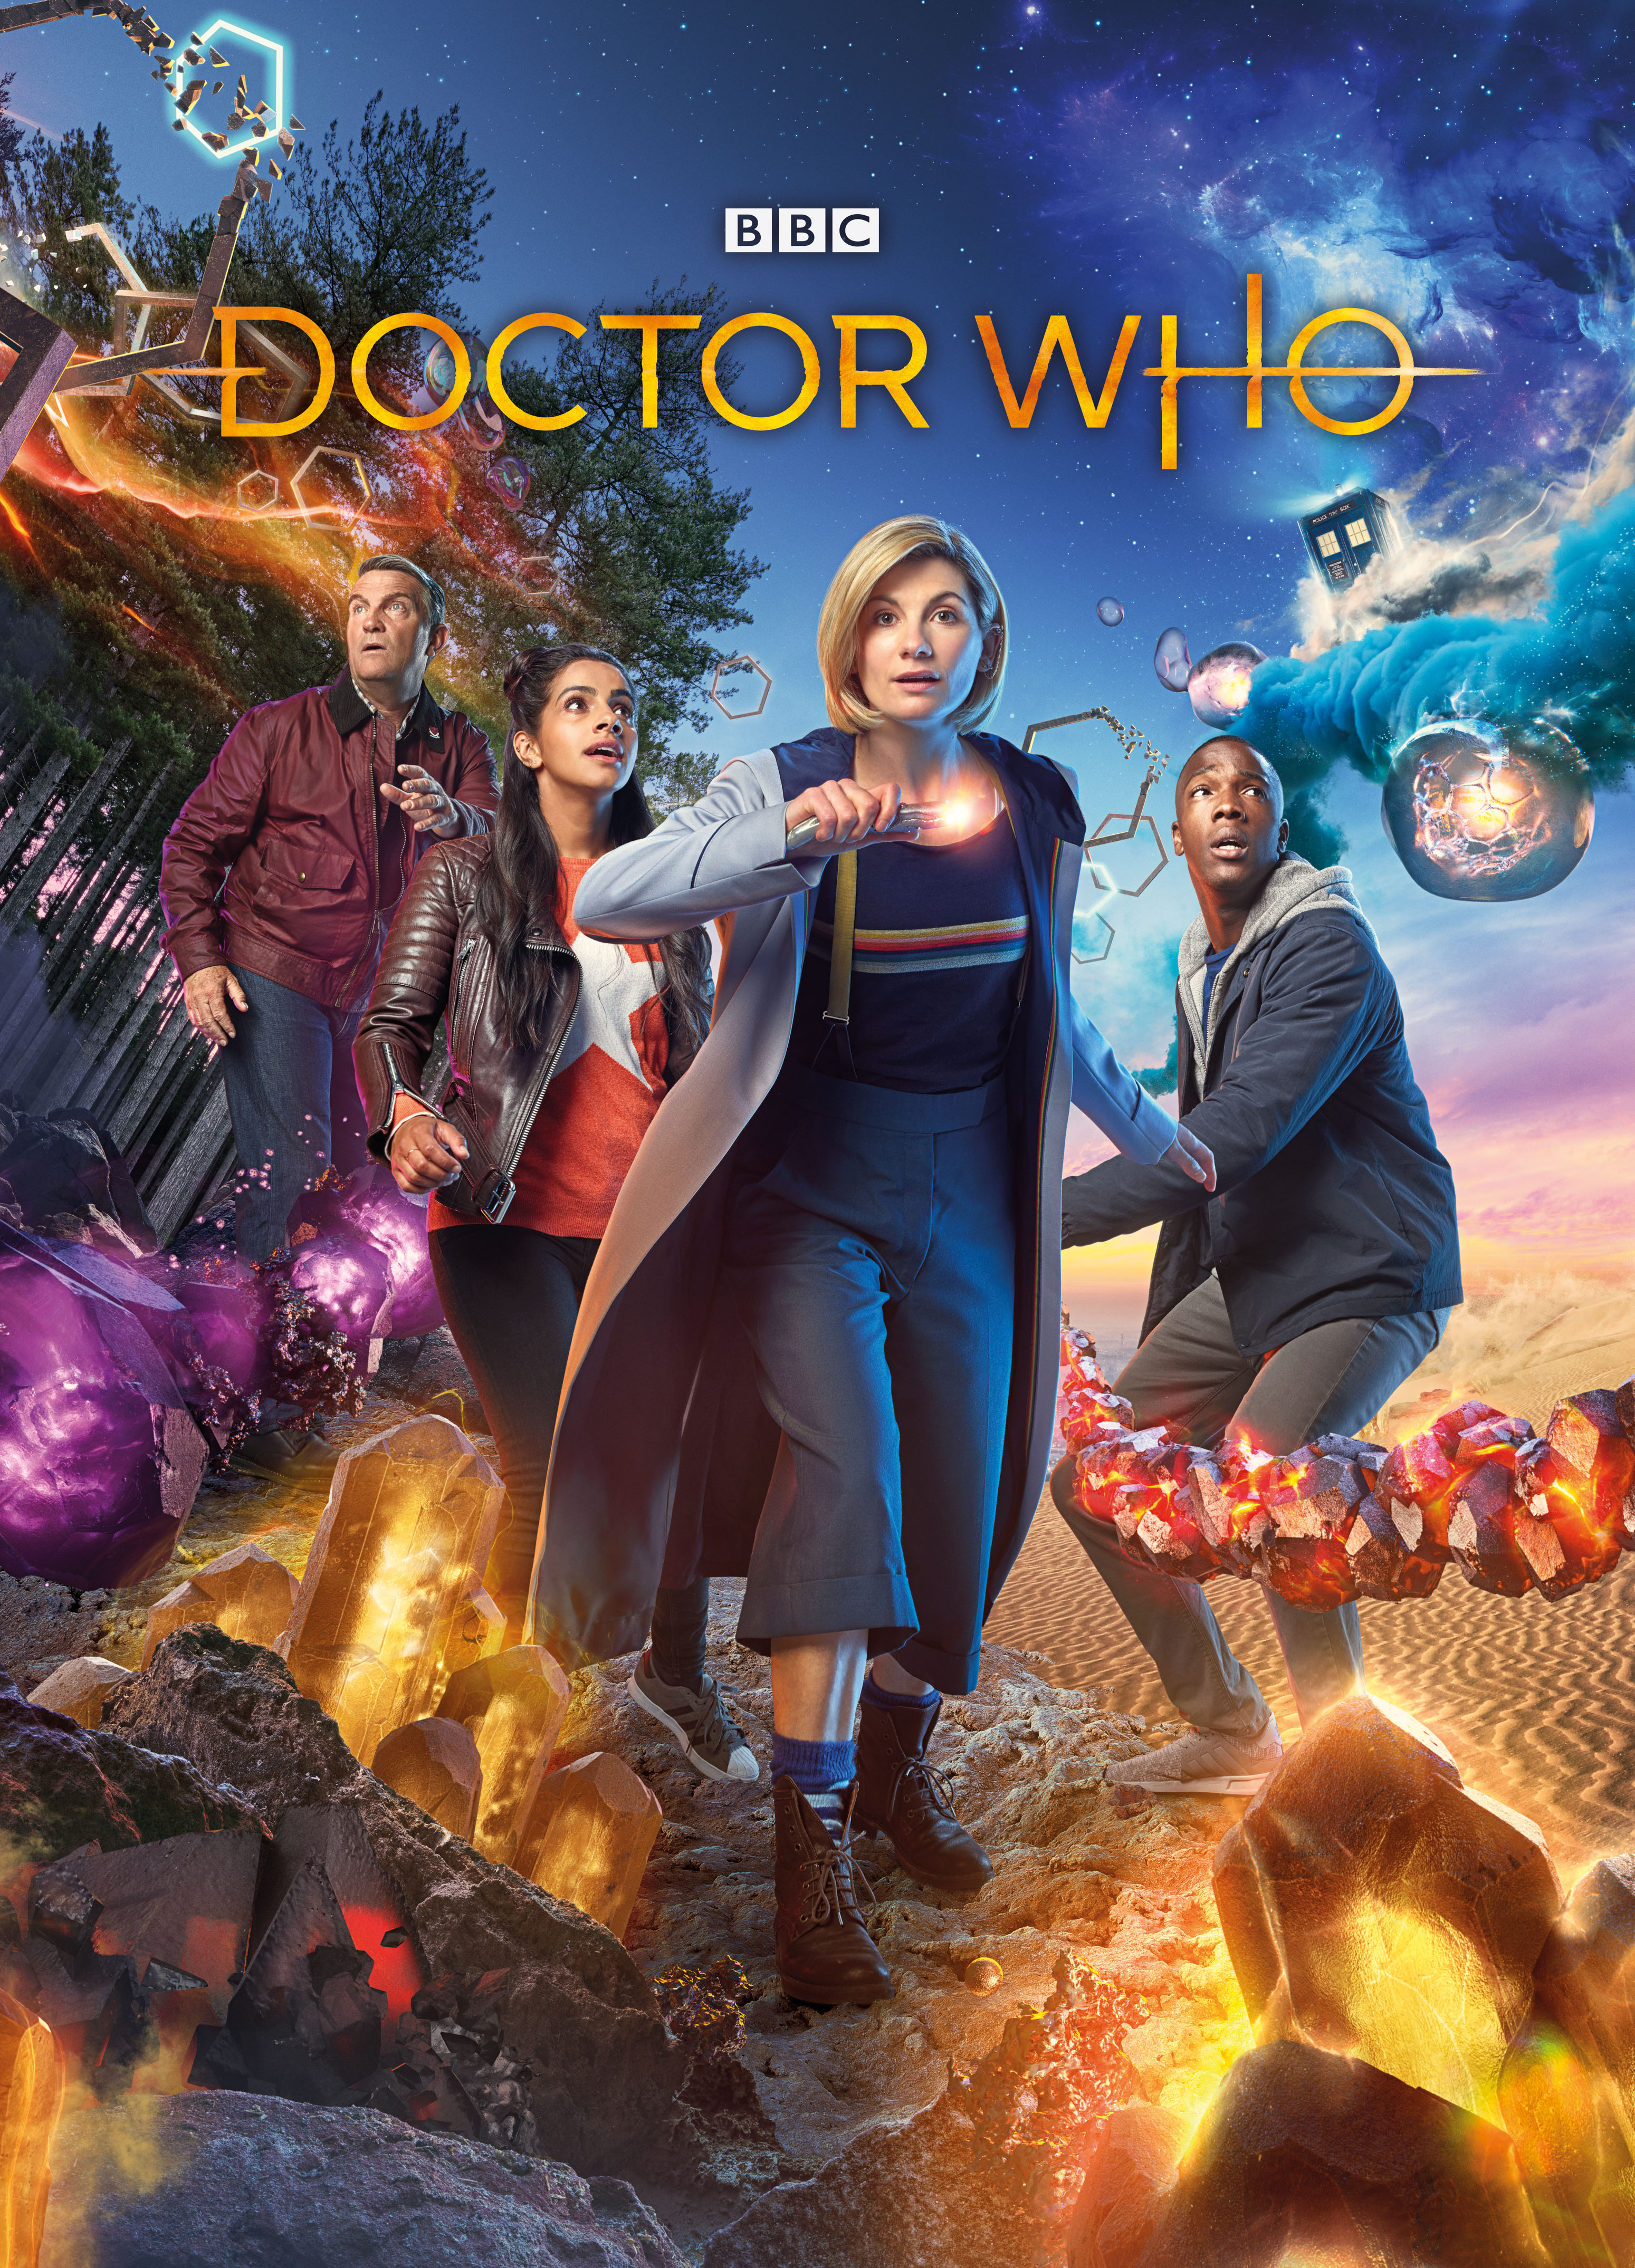 Doctor Who Season 11 COMPLETE WEBRip 480p, 720p & 1080p